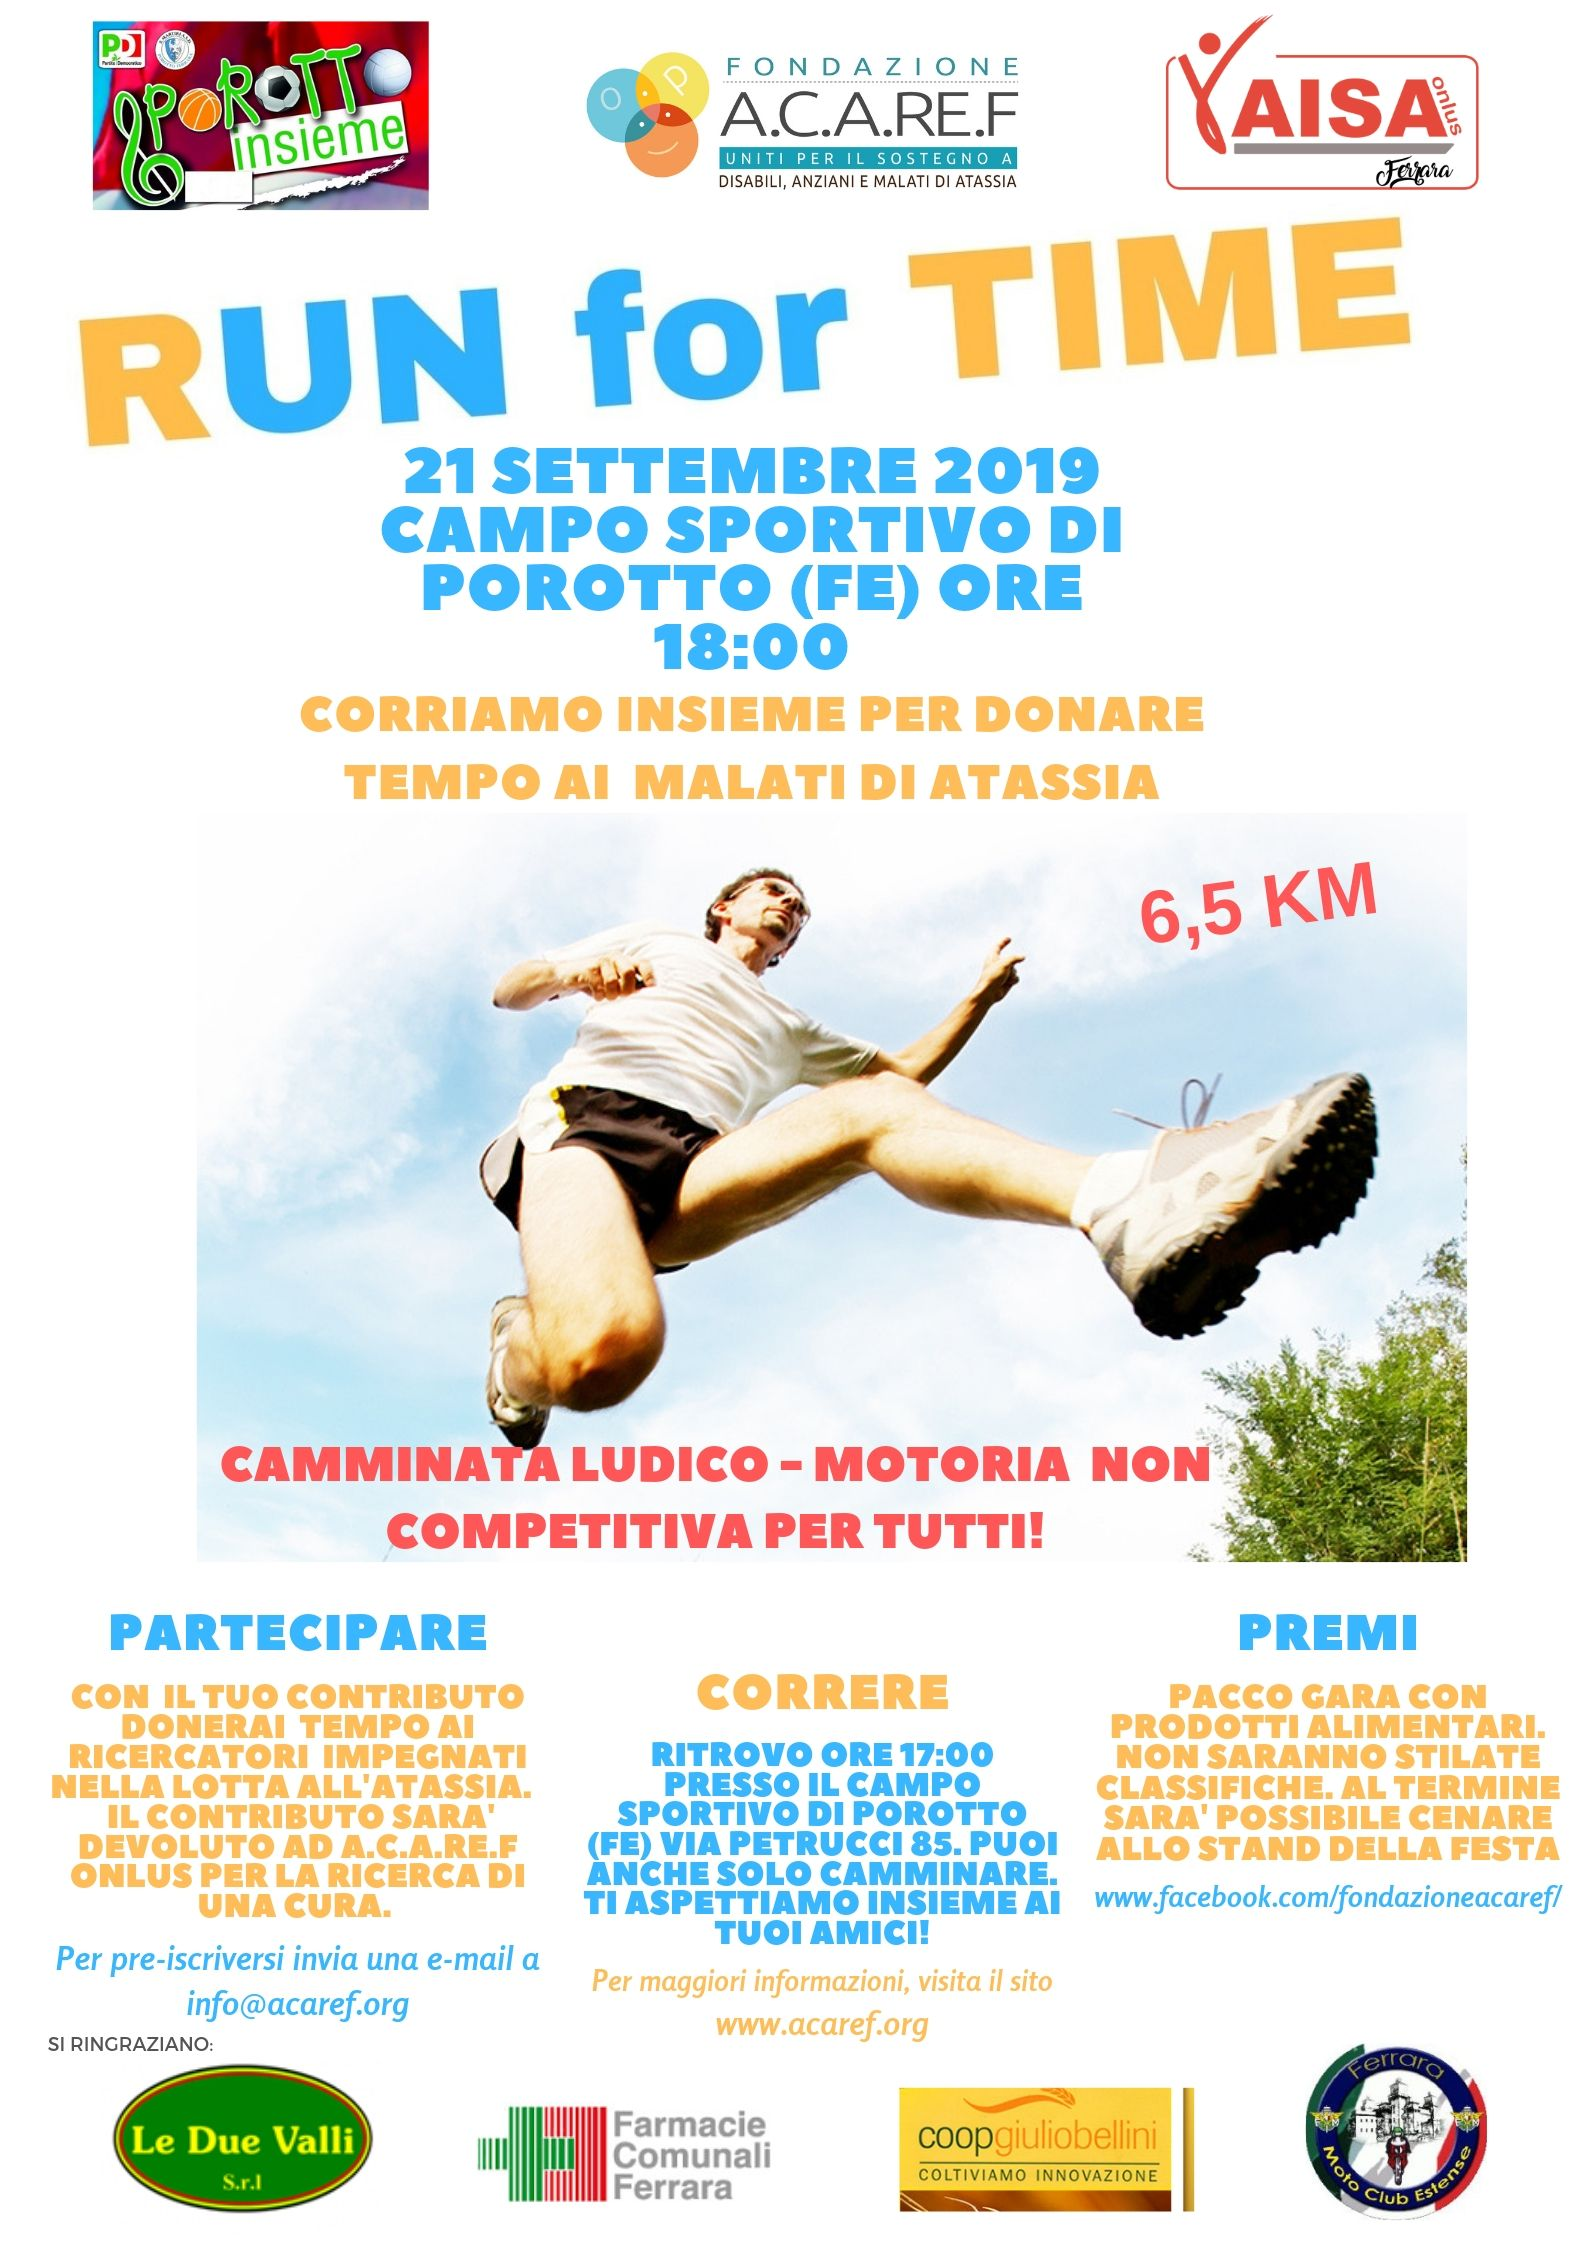 RUN FOR TIME 2019